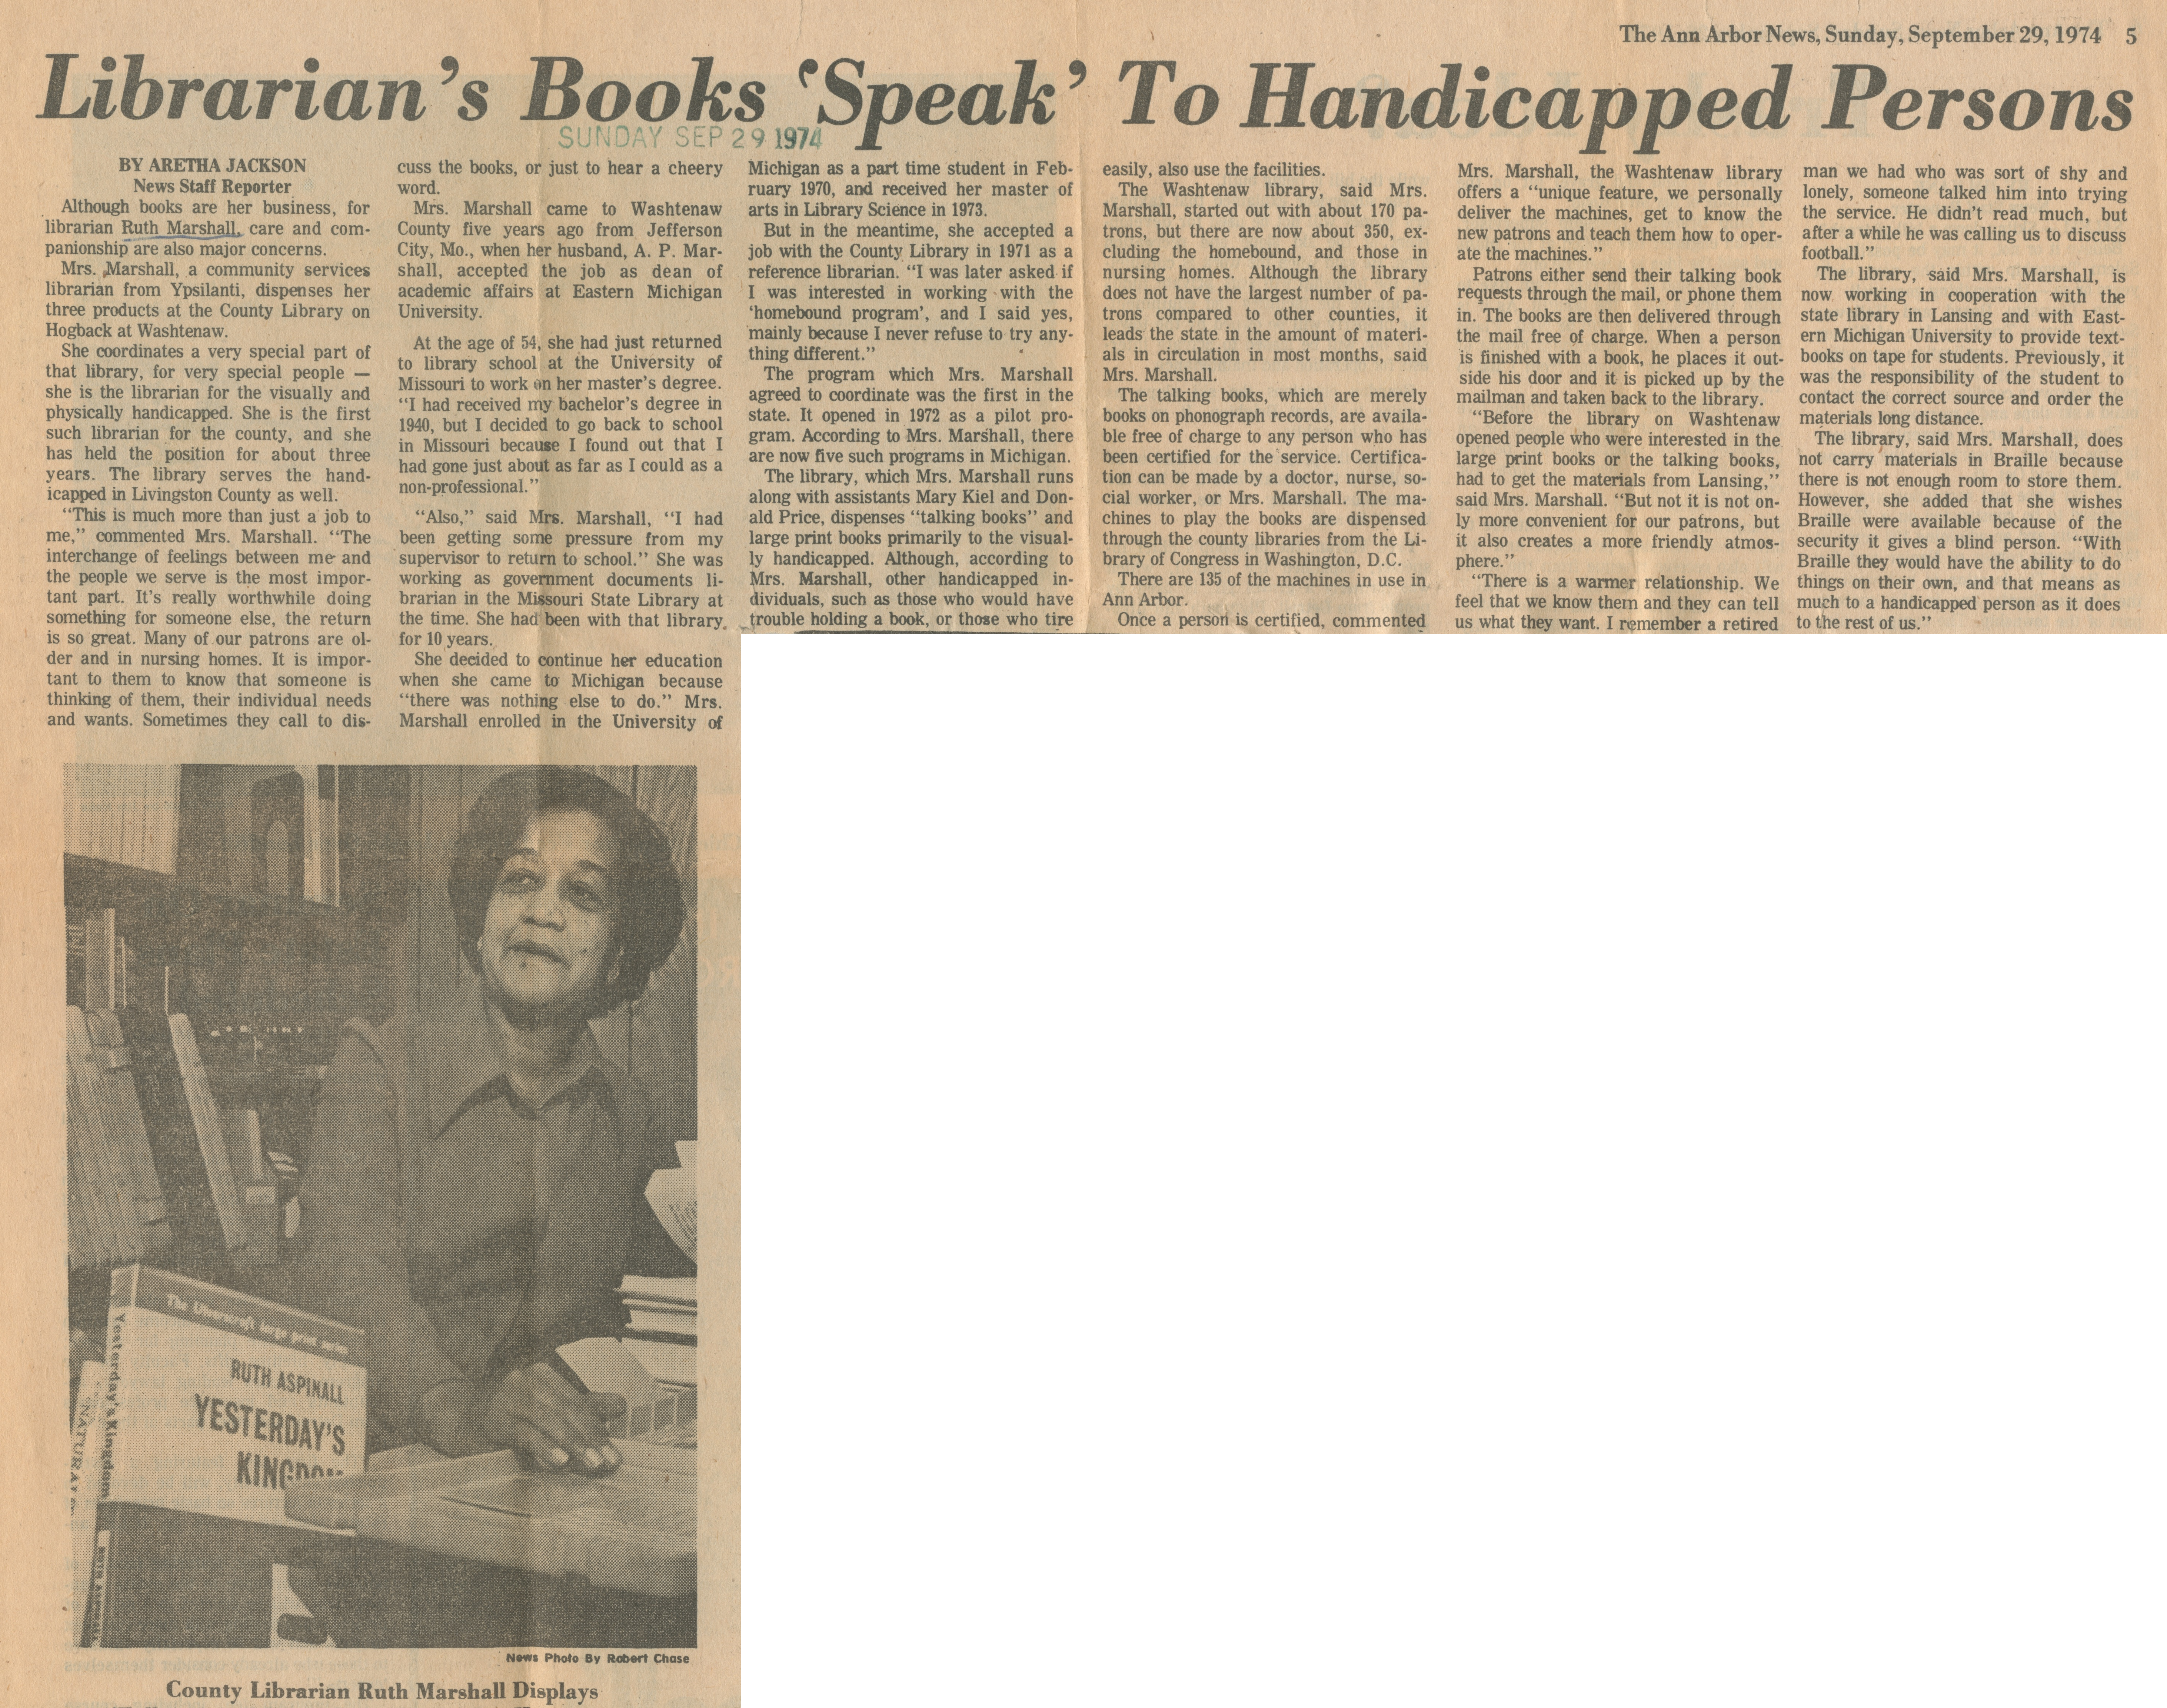 Librarian's Books 'Speak' To Handicapped Persons image